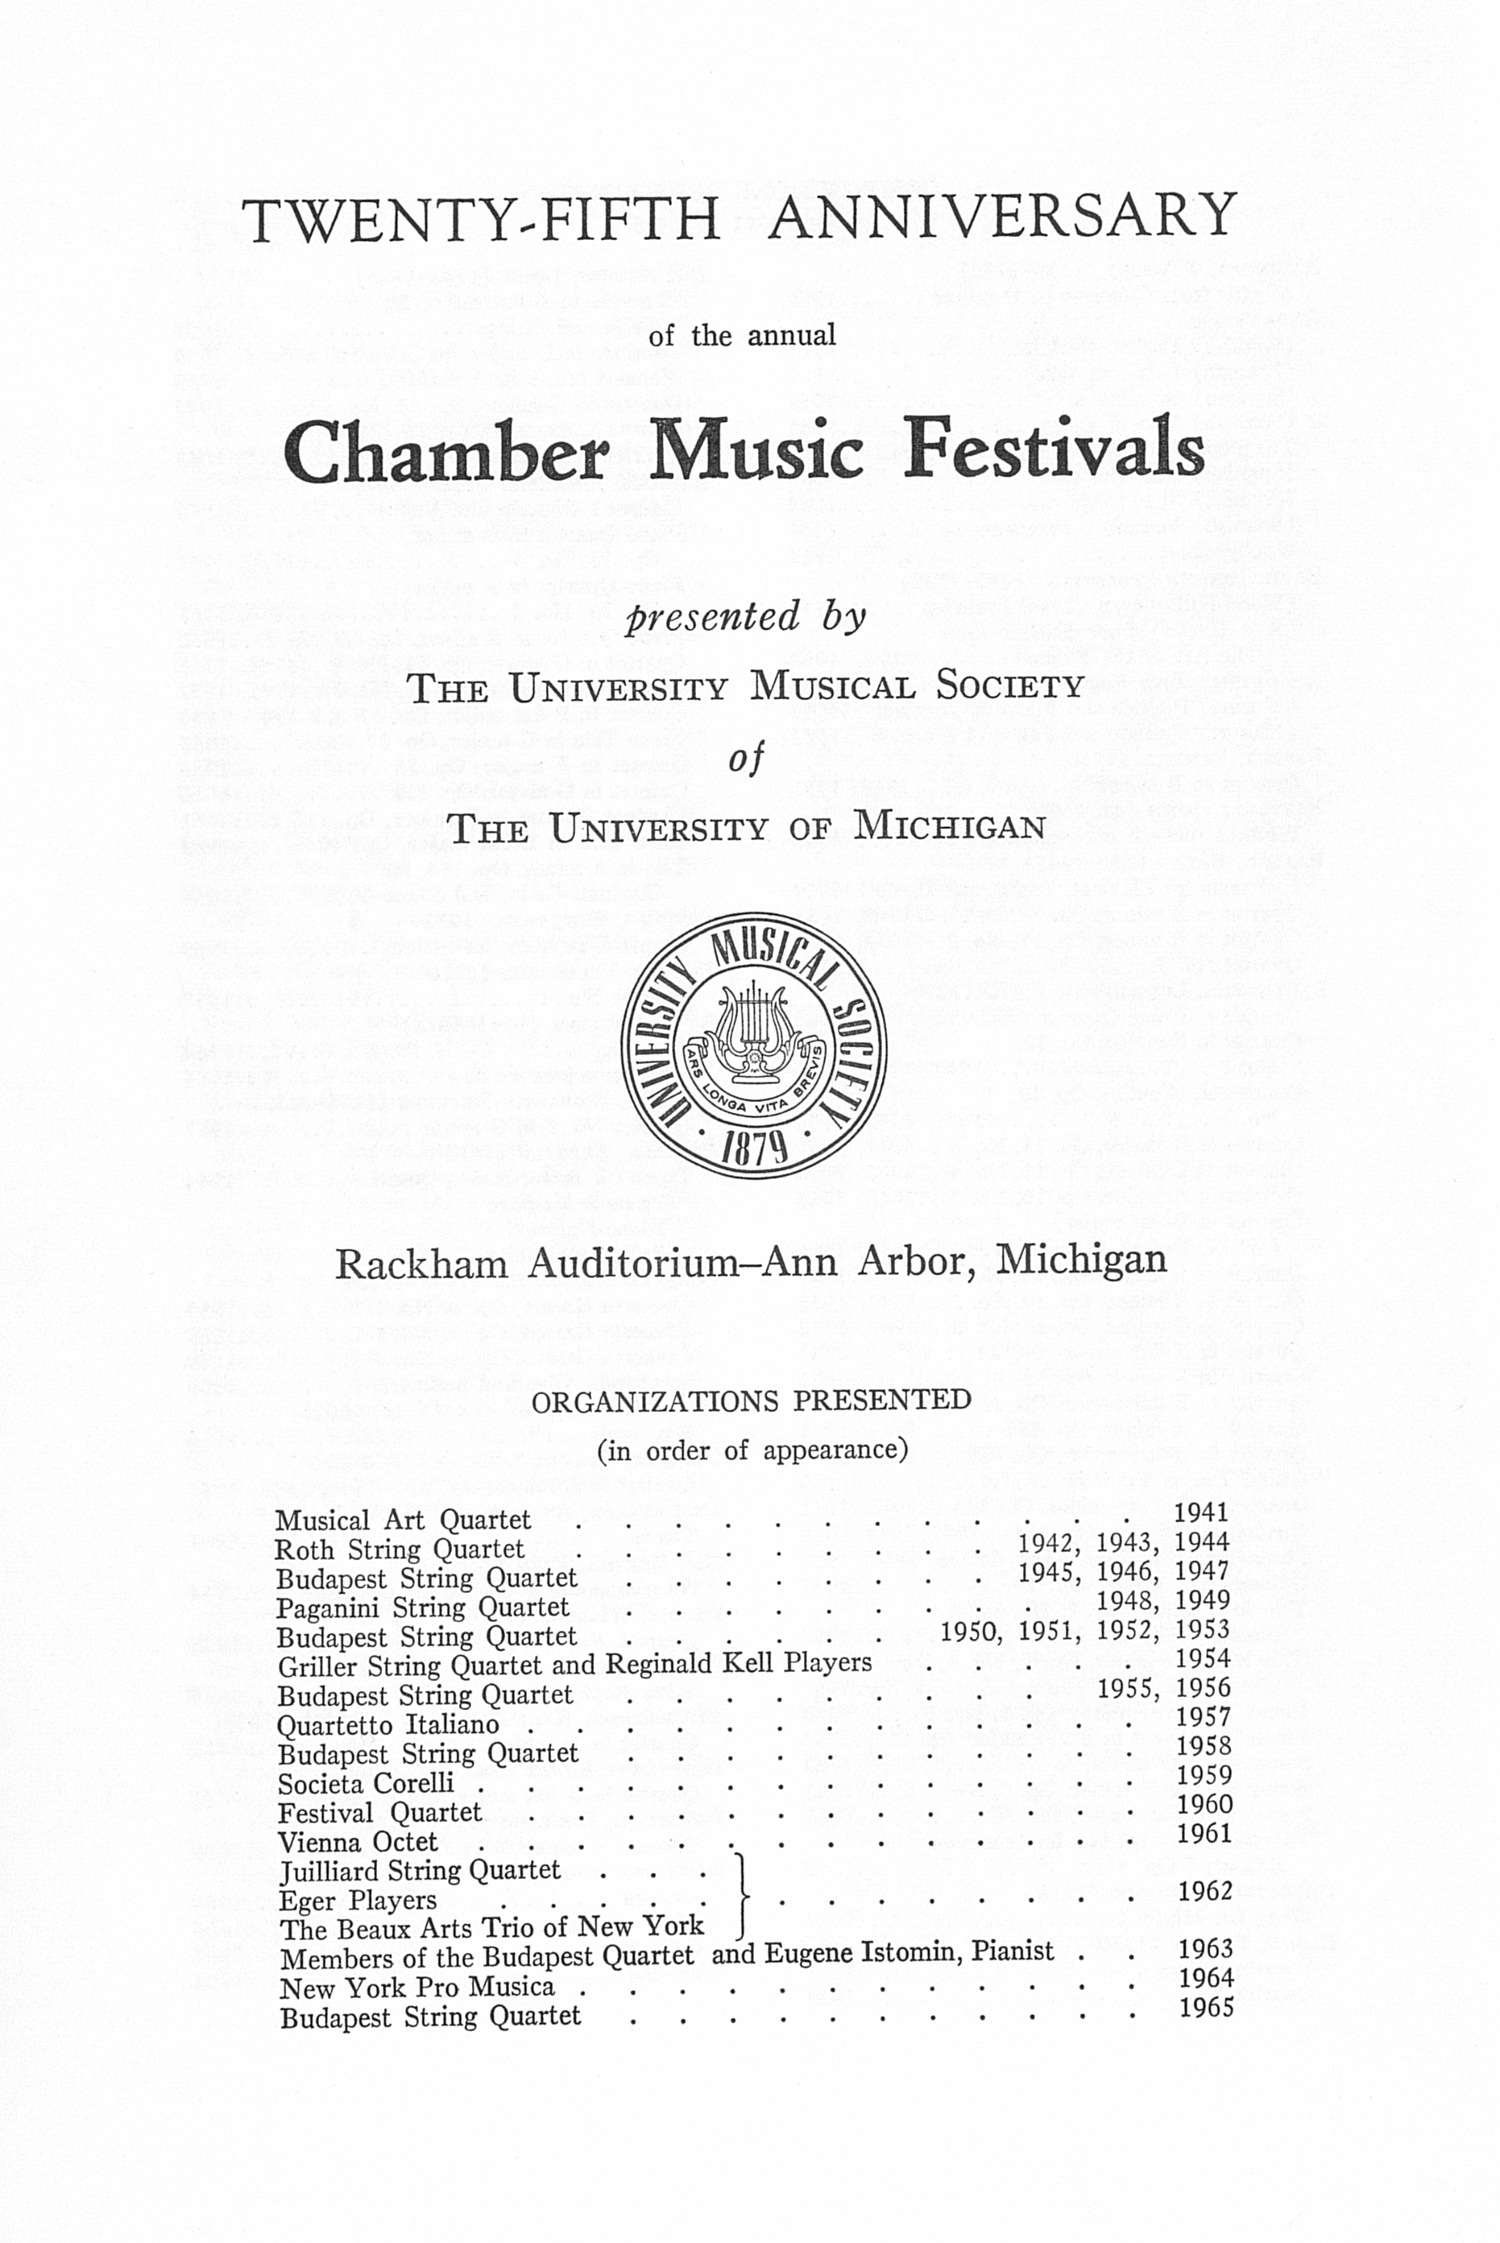 UMS Concert Program, : Twenty-fifth Anniversary Of The Annual Chamber Music Festivals --  image